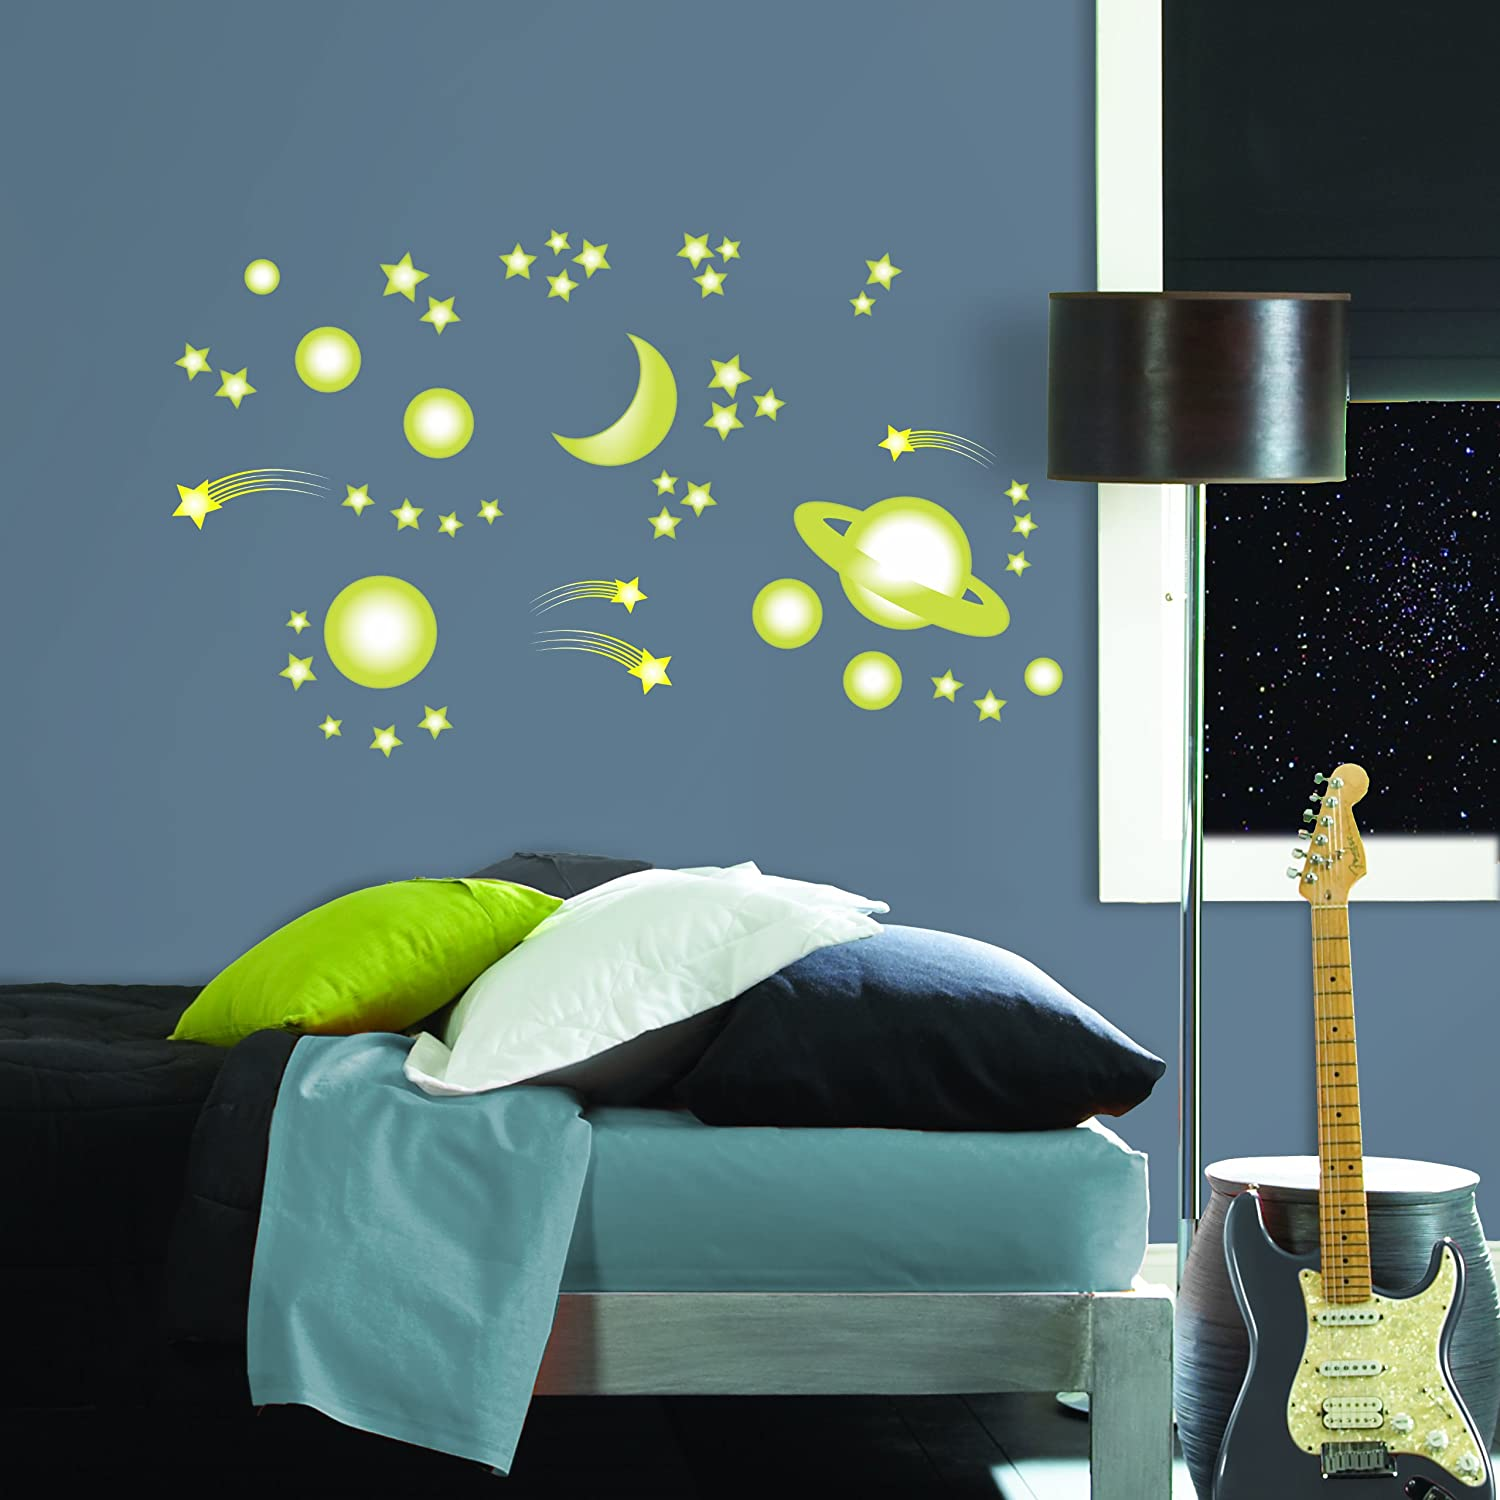 MyStyle MS0105 Outer Space Glow In The Dark Peel And Stick Wall Art    Decorative Wall Appliques   Amazon.com Part 58